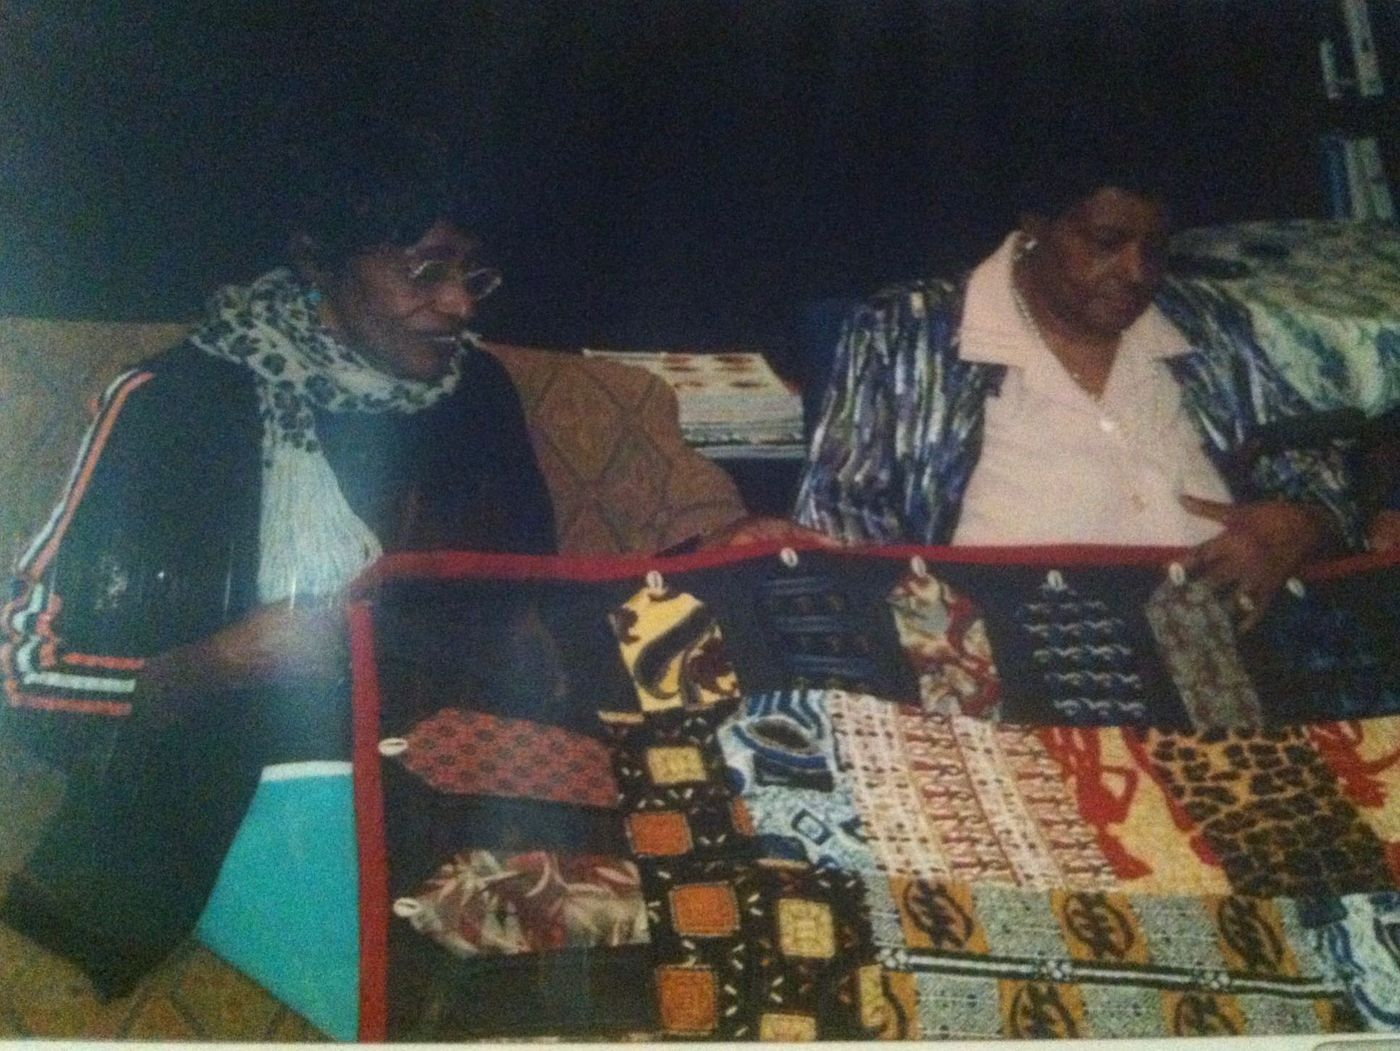 Dorothy Beam (right) looks at the quilt made from the neckties she donated with sister, Margaret Davis (left), who died in 2016.